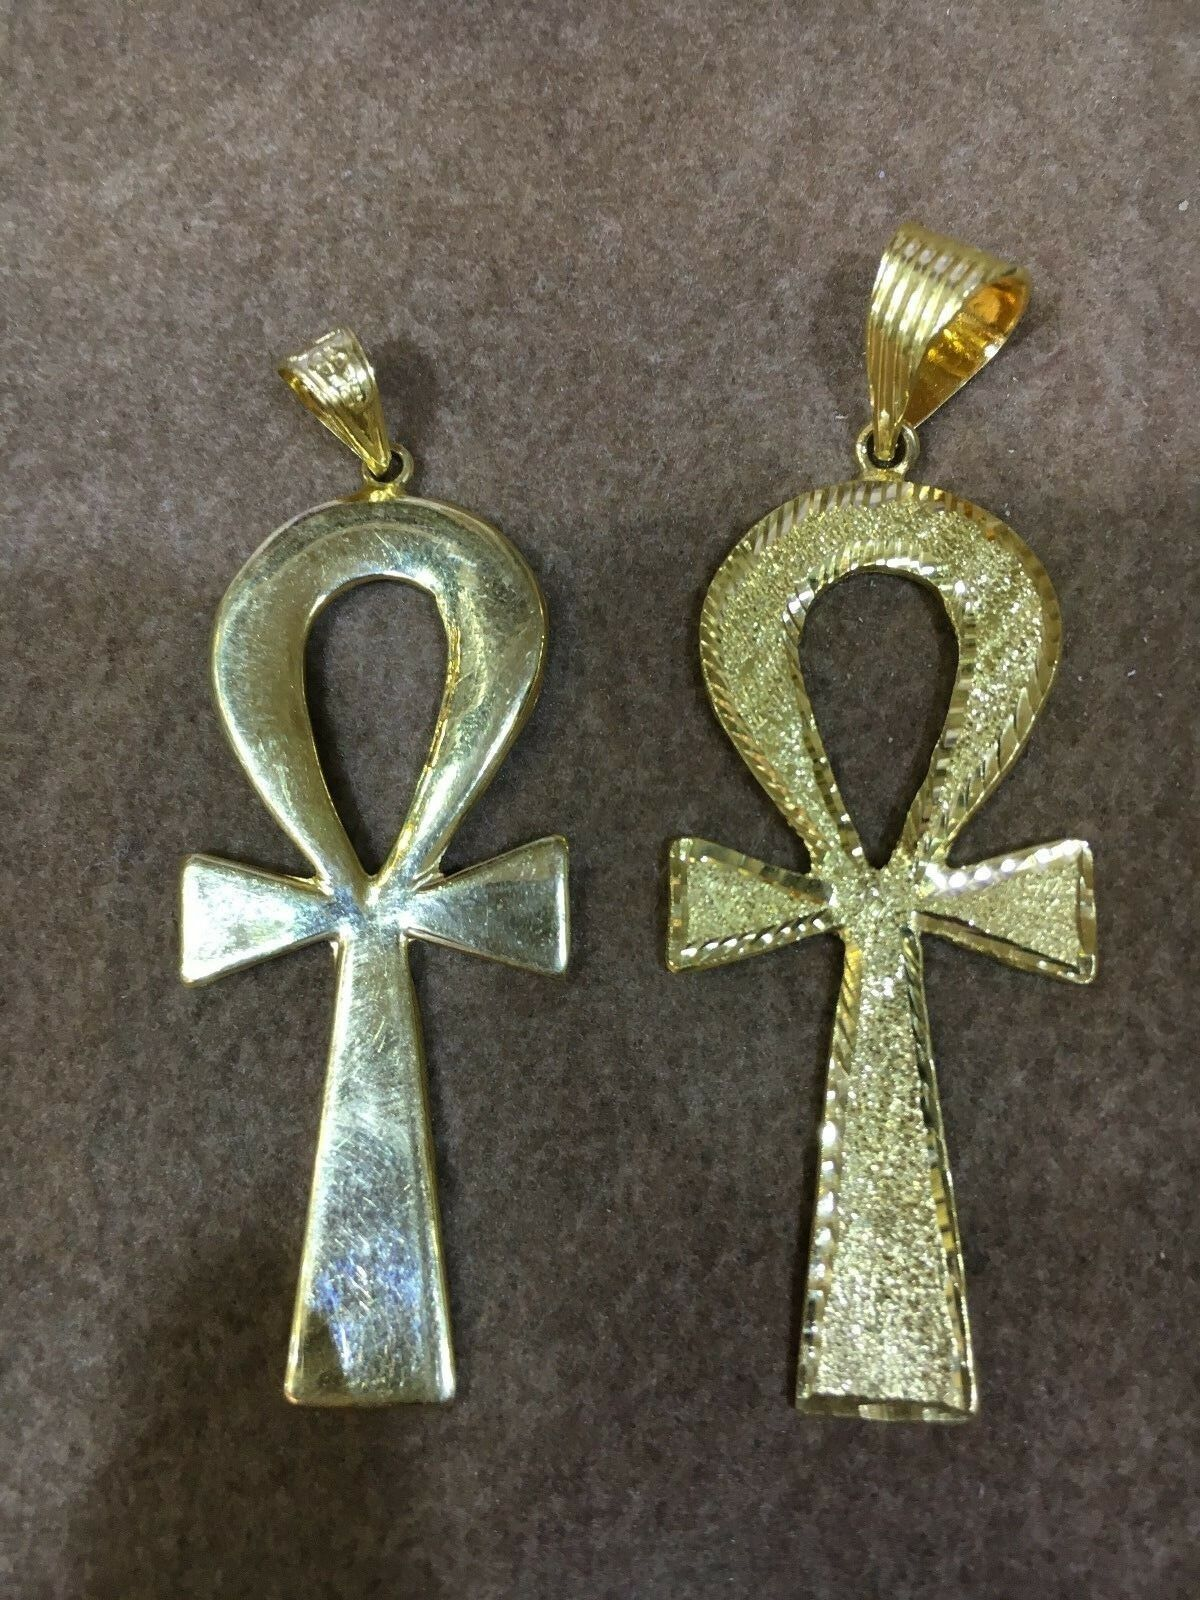 Egyptian Key of Life Yellow gold Pendant 18K Stamped (11g) Free Shipping